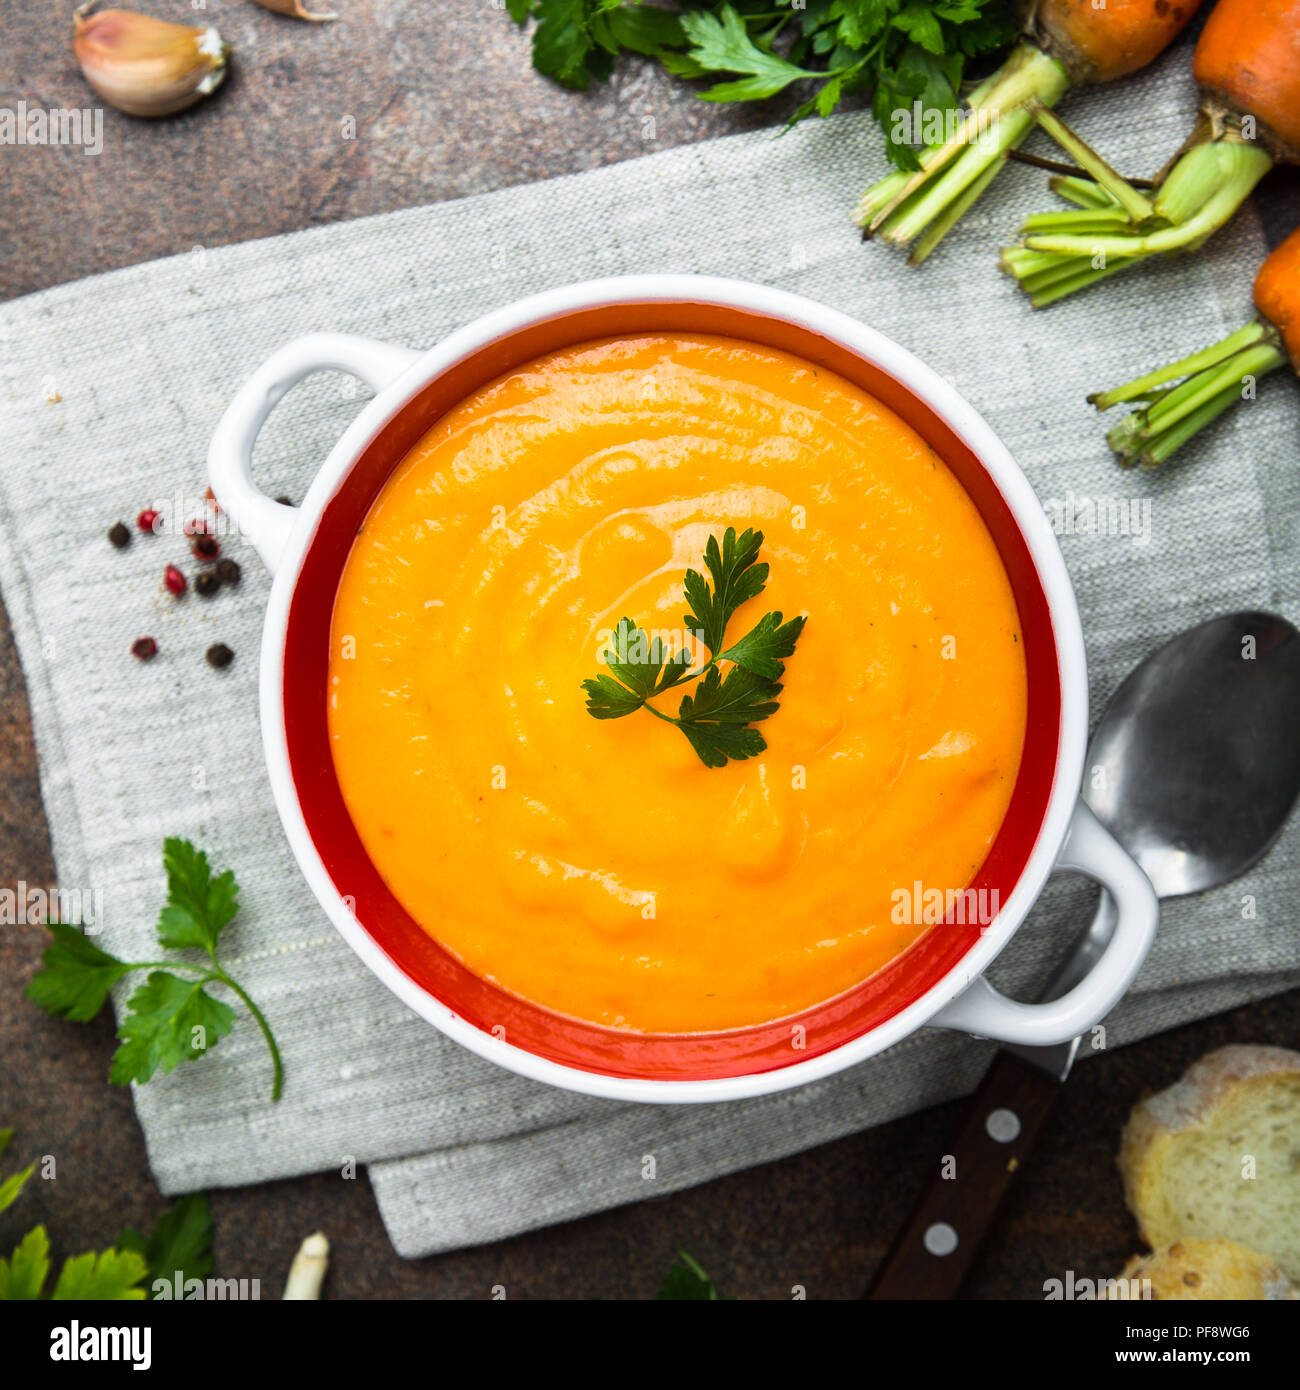 Carrot cream-soup on dark stone table. Vegetarian vegetables soup. Top view. Square. - Stock Image